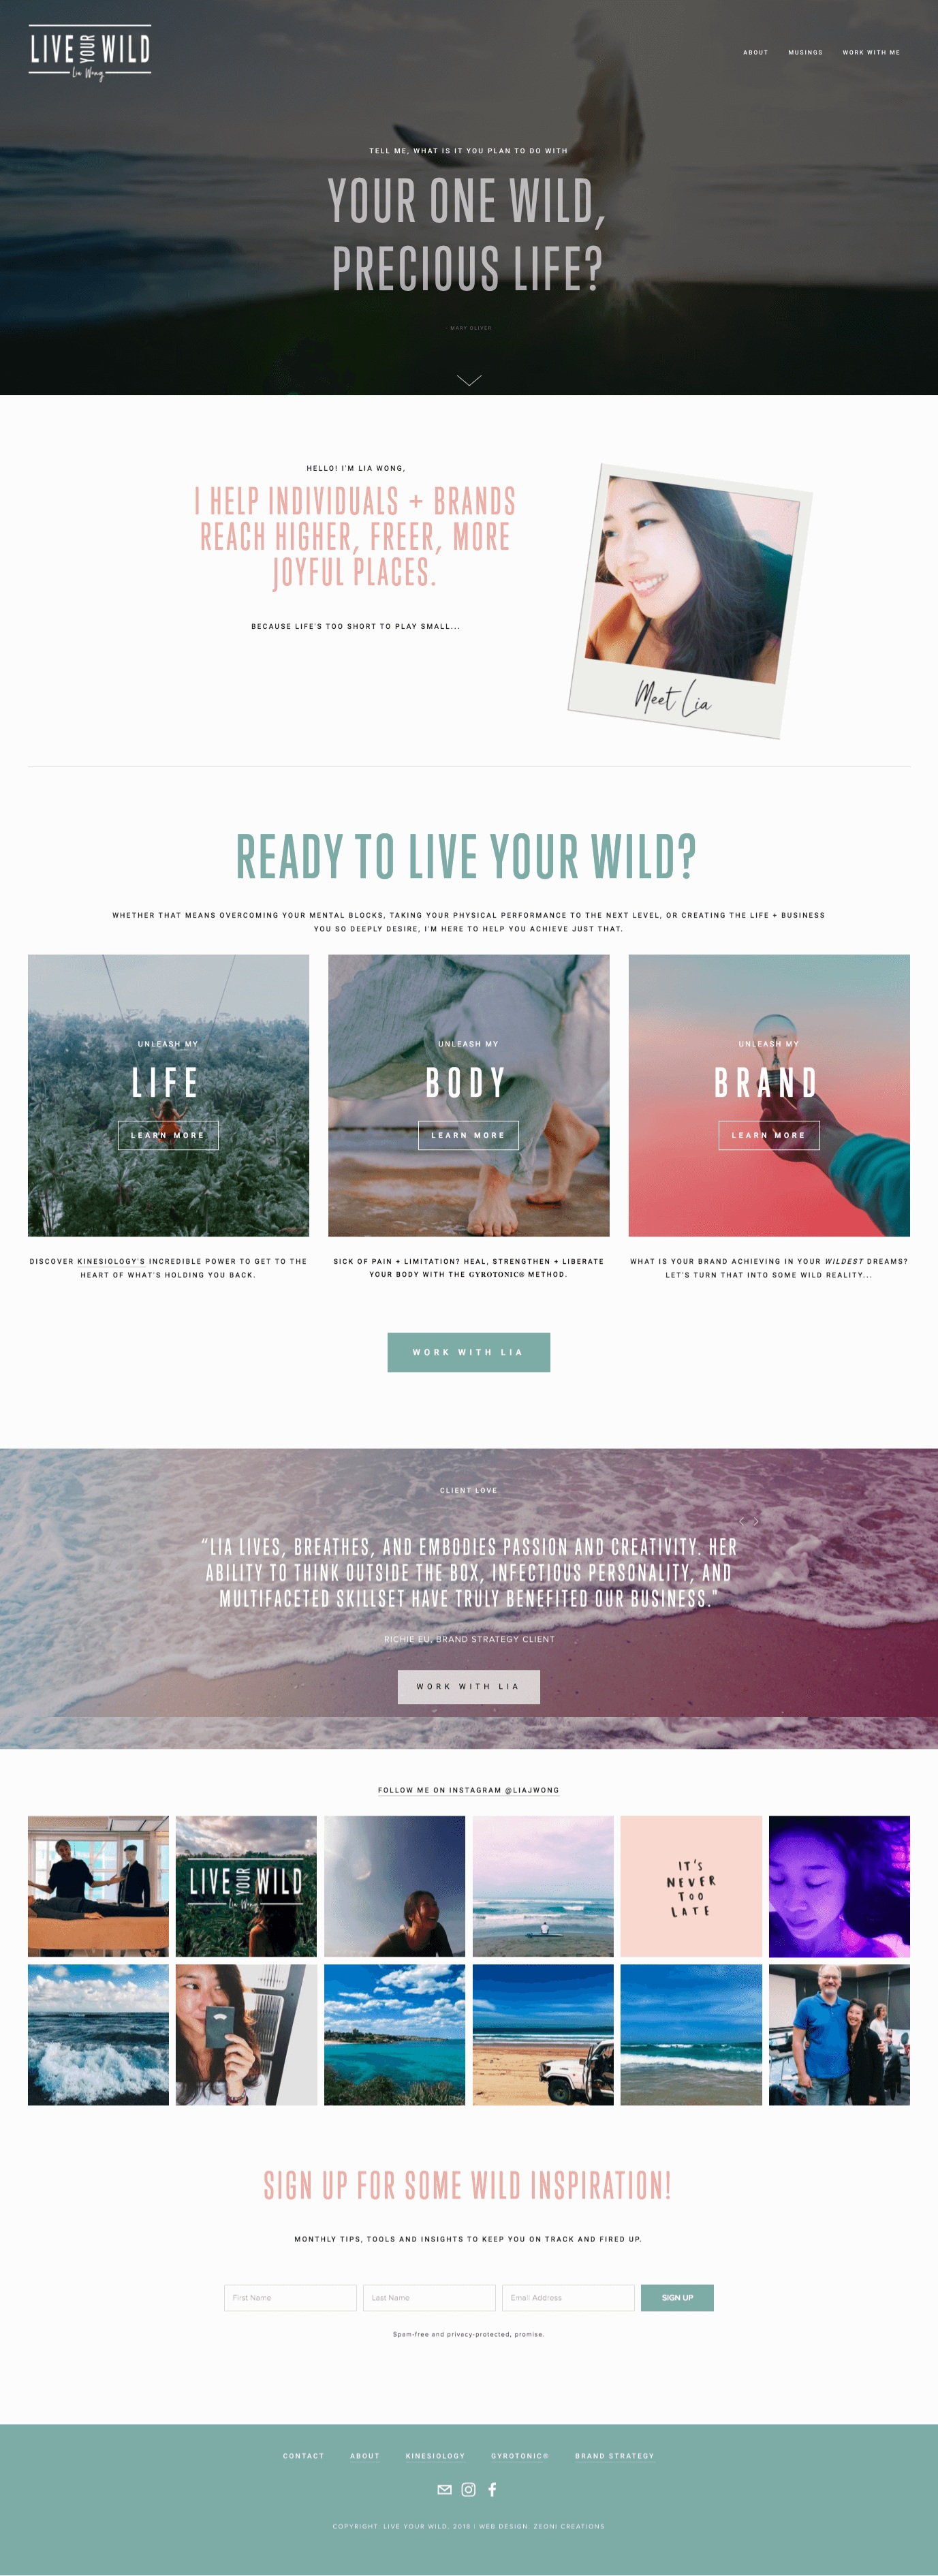 live your wild zeoni creations web design.png